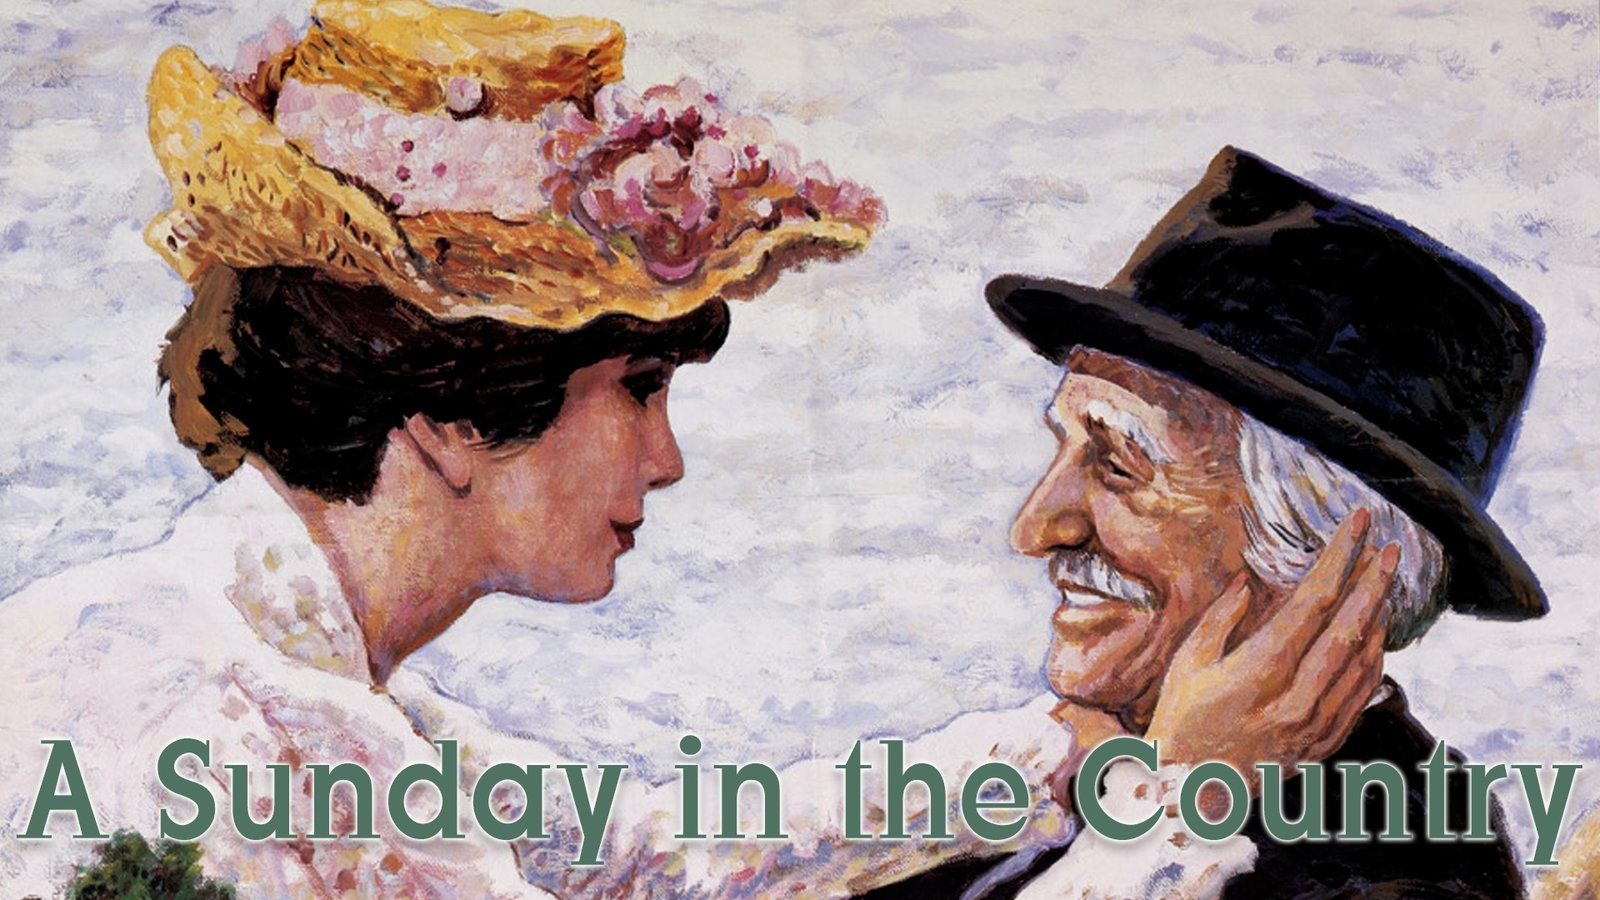 A Sunday in the Country - Un Dimaanche a la Campagne